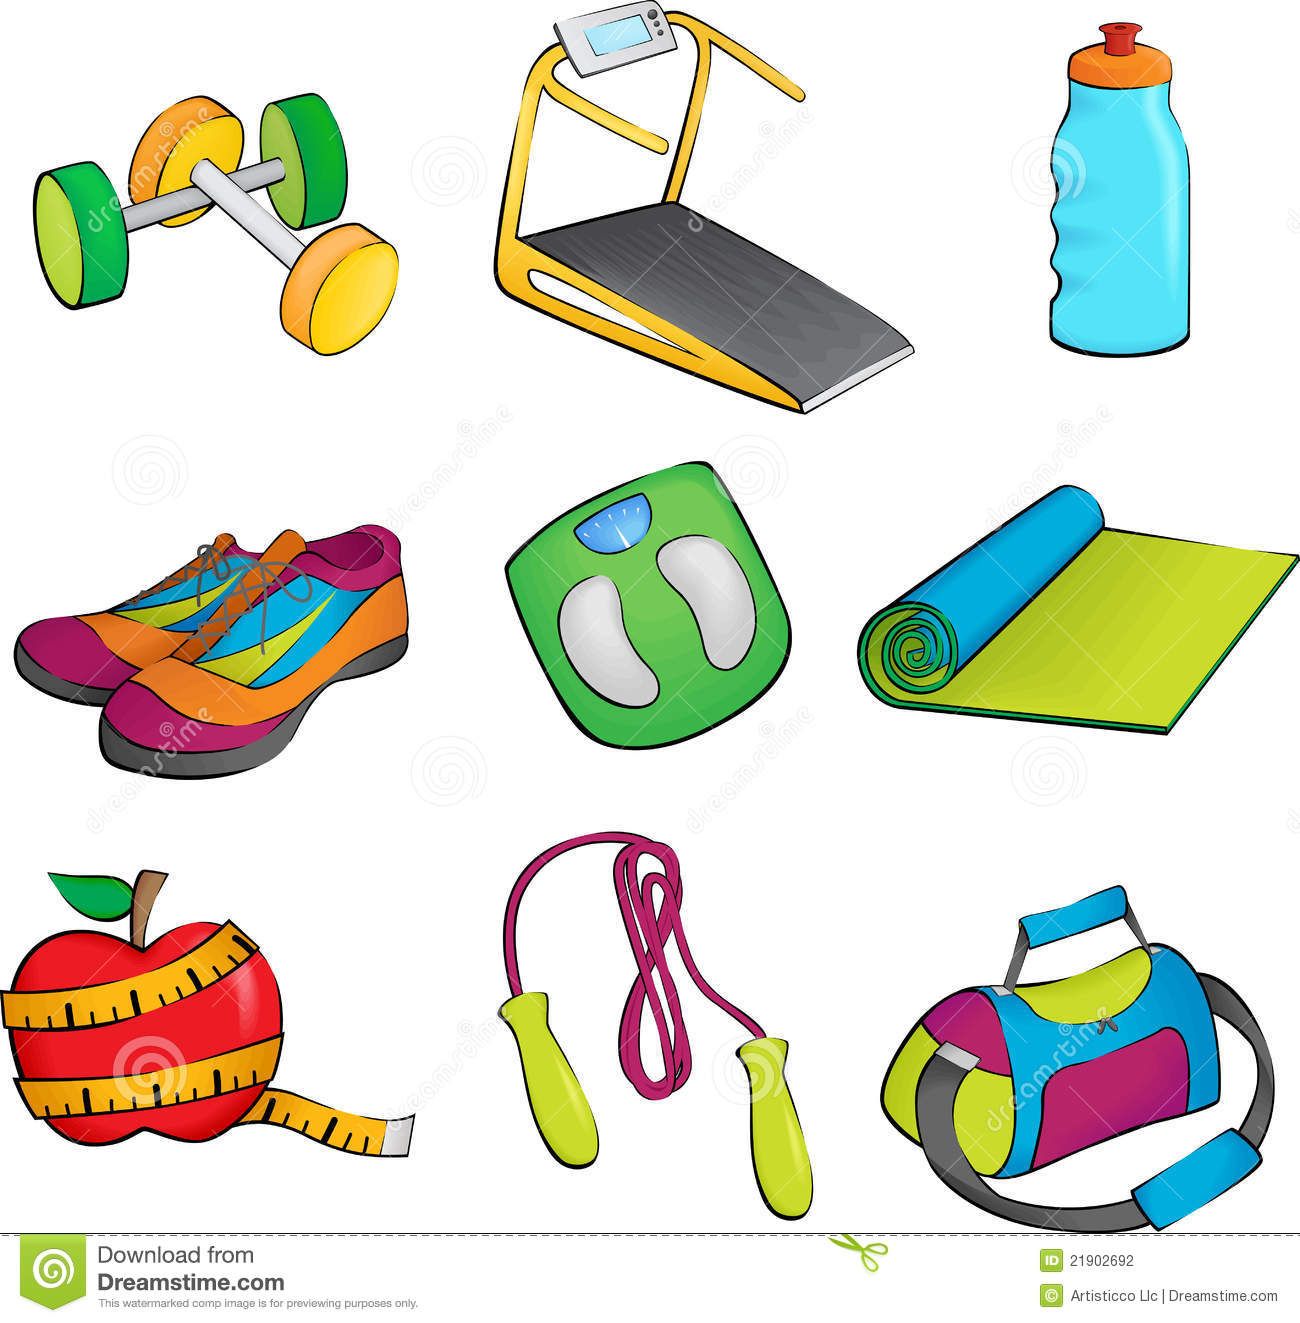 Exercise equipment icons stock photography image 21902692 for Aparatos de ejercicio